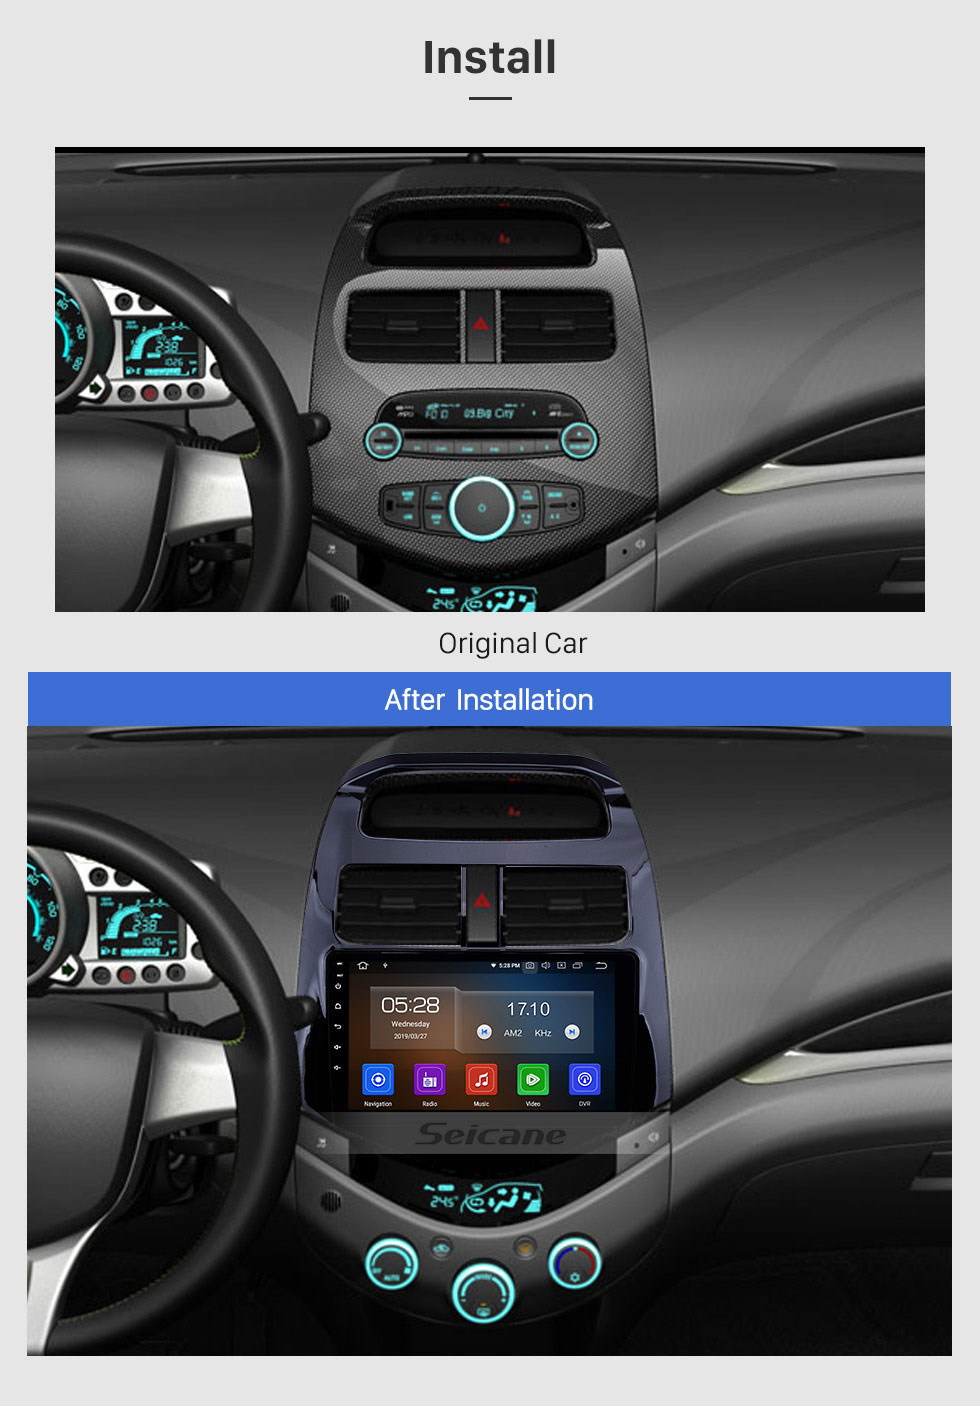 Seicane 9 inch Android 9.0 GPS Navigation for 2011 2012 2013 2014 Chevy Chevrolet DAEWOO Spark Beat Matiz HD Touchscreen Bluetooth Radio Wifi Music USB AUX ssupport DVR OBD2 Carplay Rearview Camera